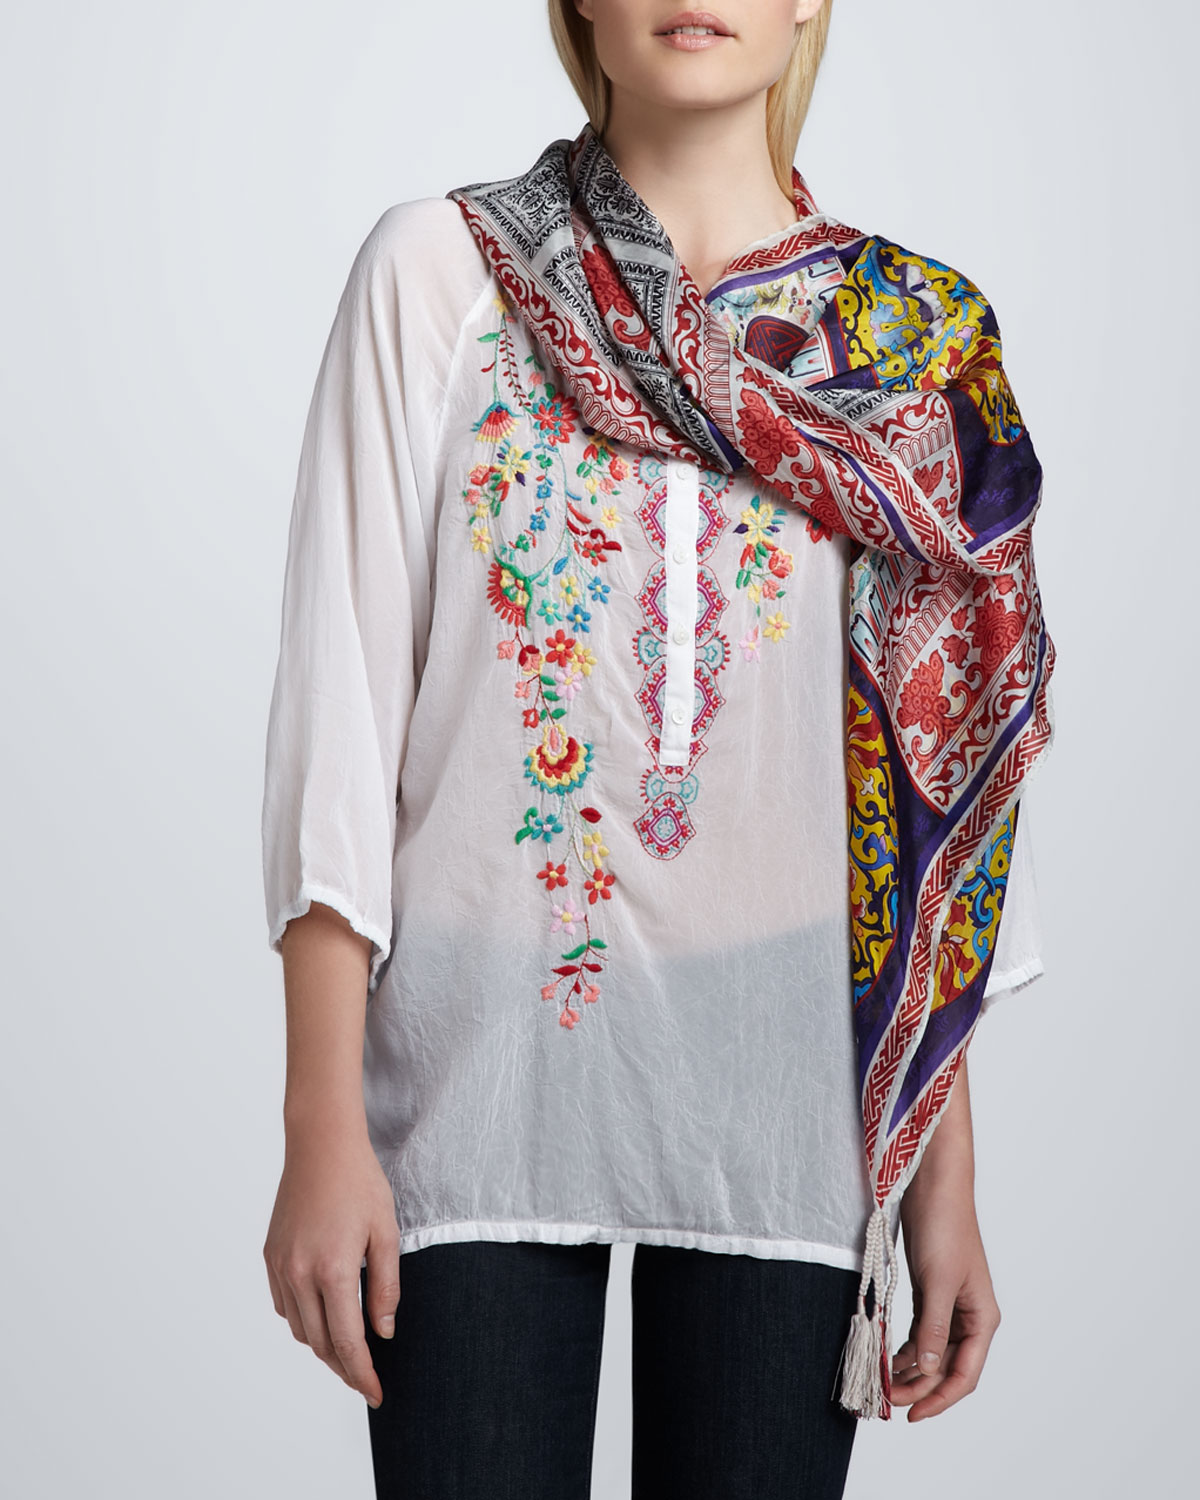 Embroidered Georgette Monet Blouse & Patchwork Silk Georgette Scarf, Women's